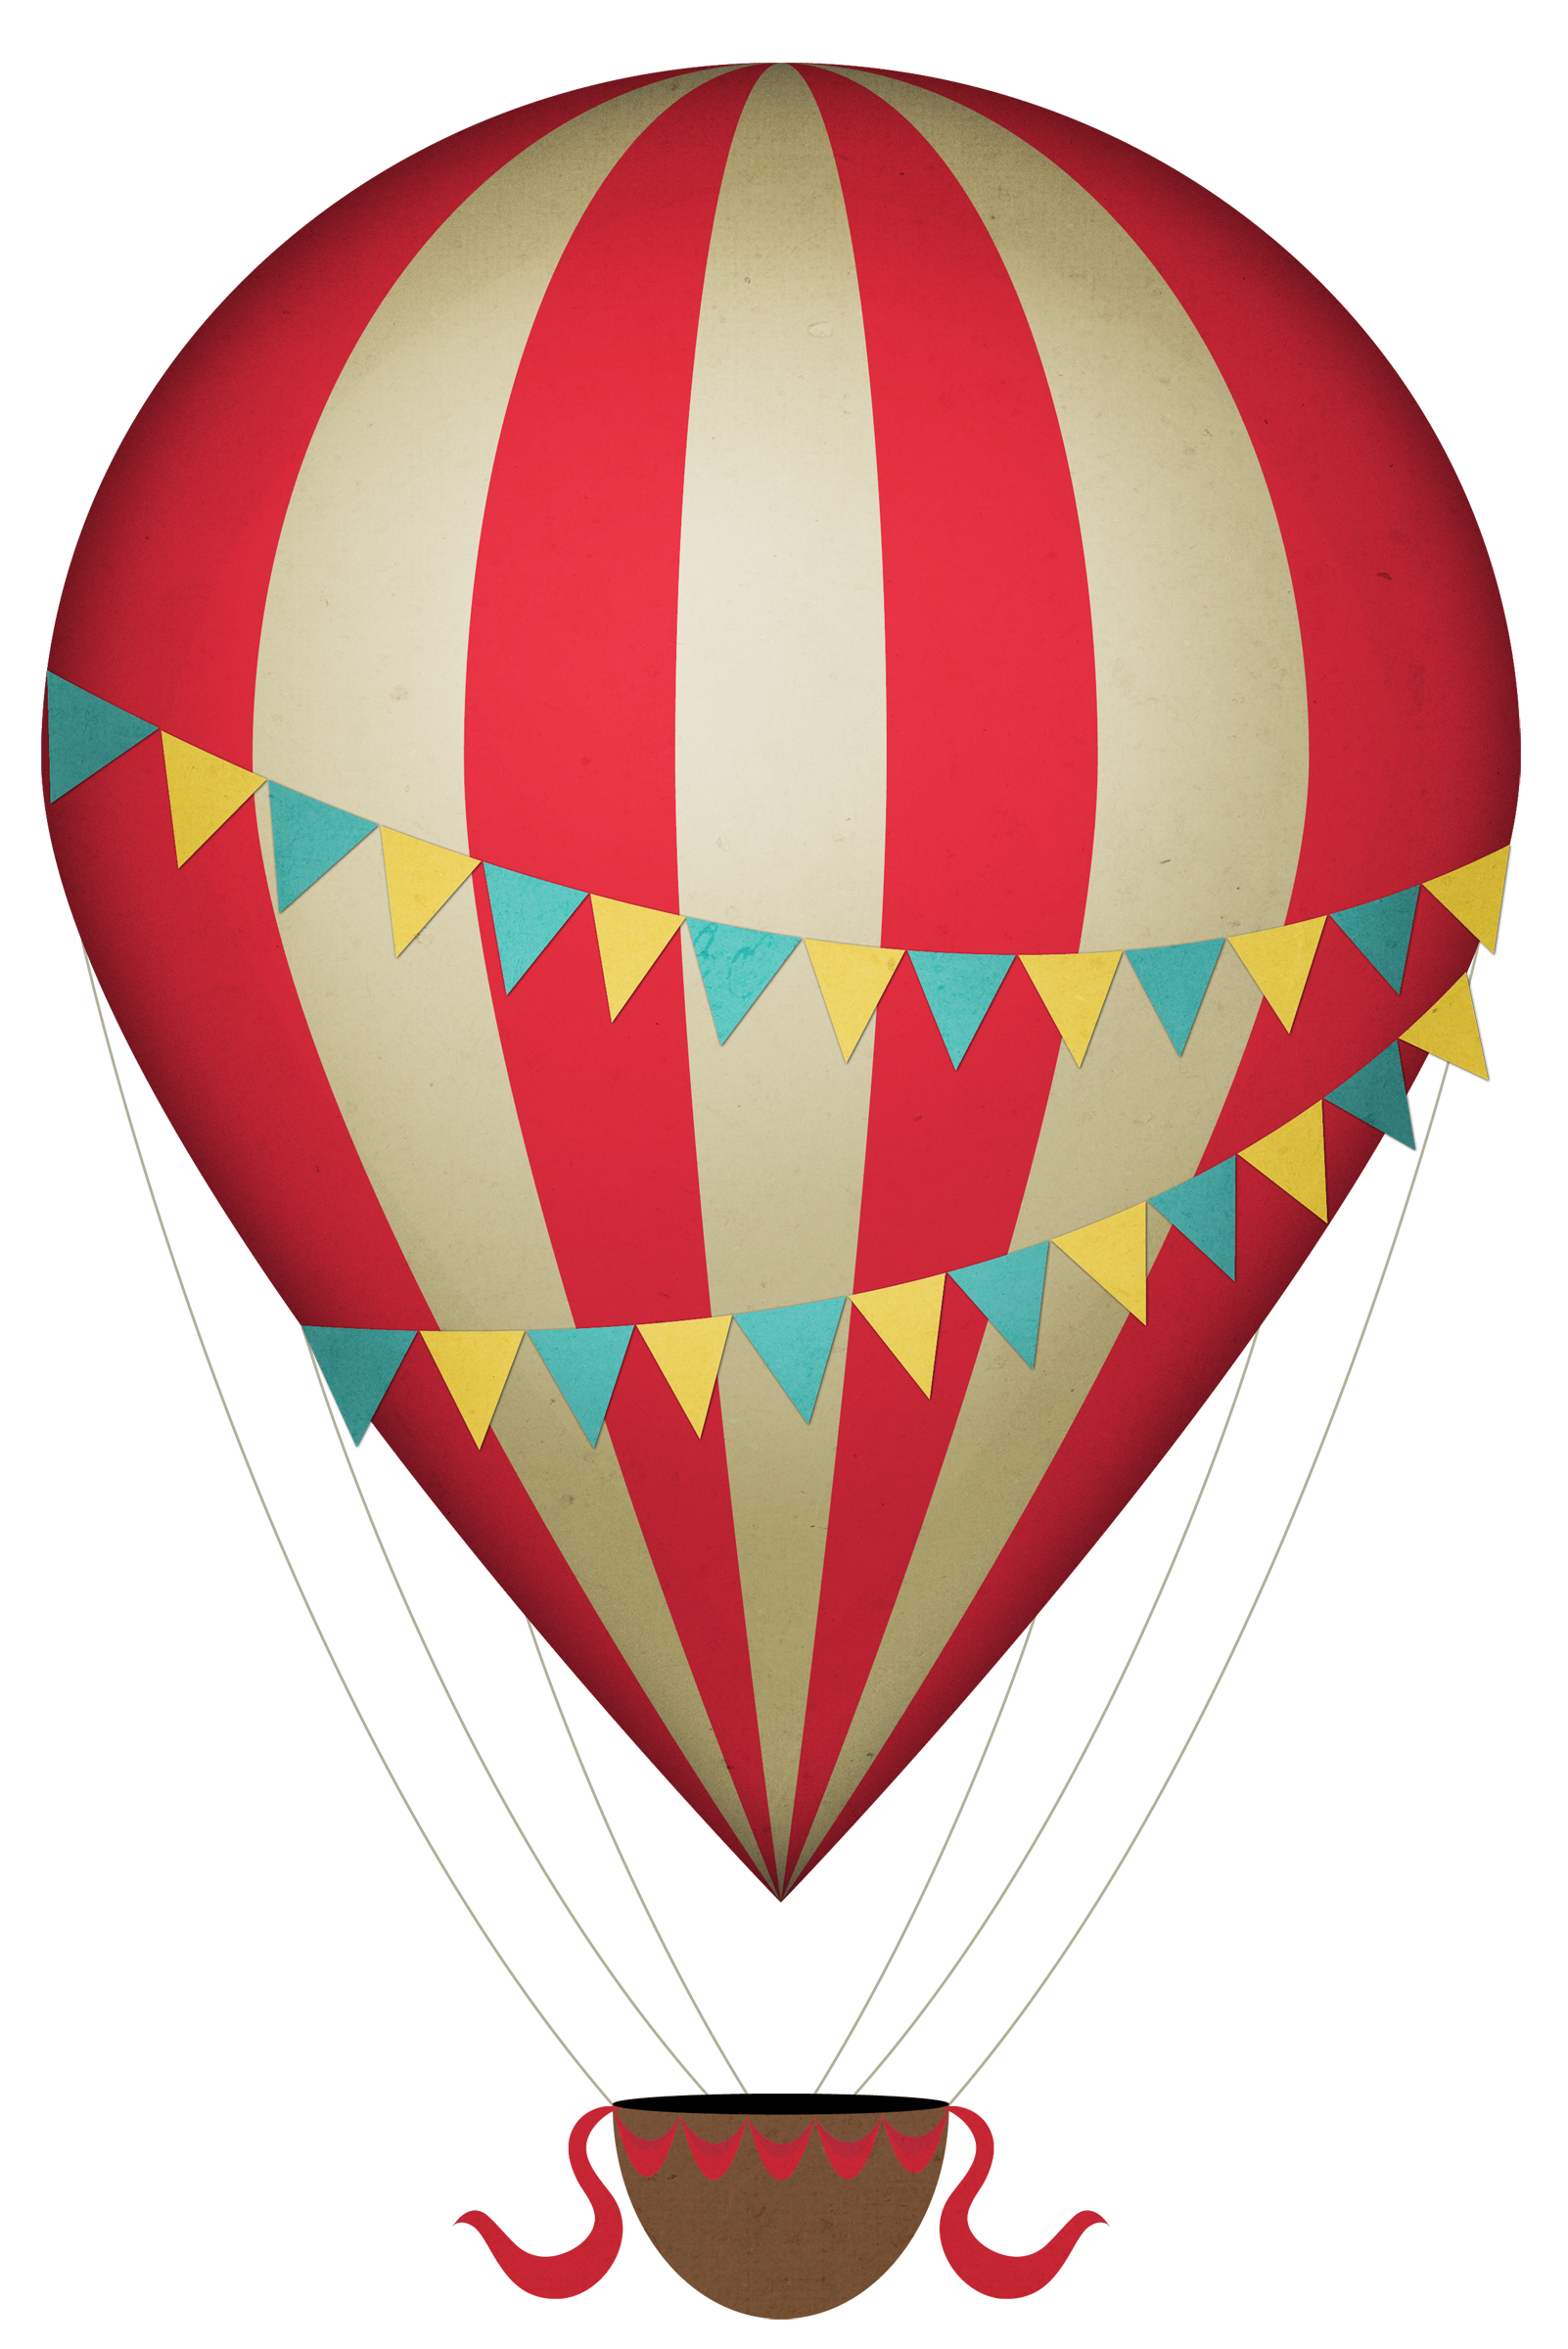 Hot air up inspiration. Clipart balloon vintage